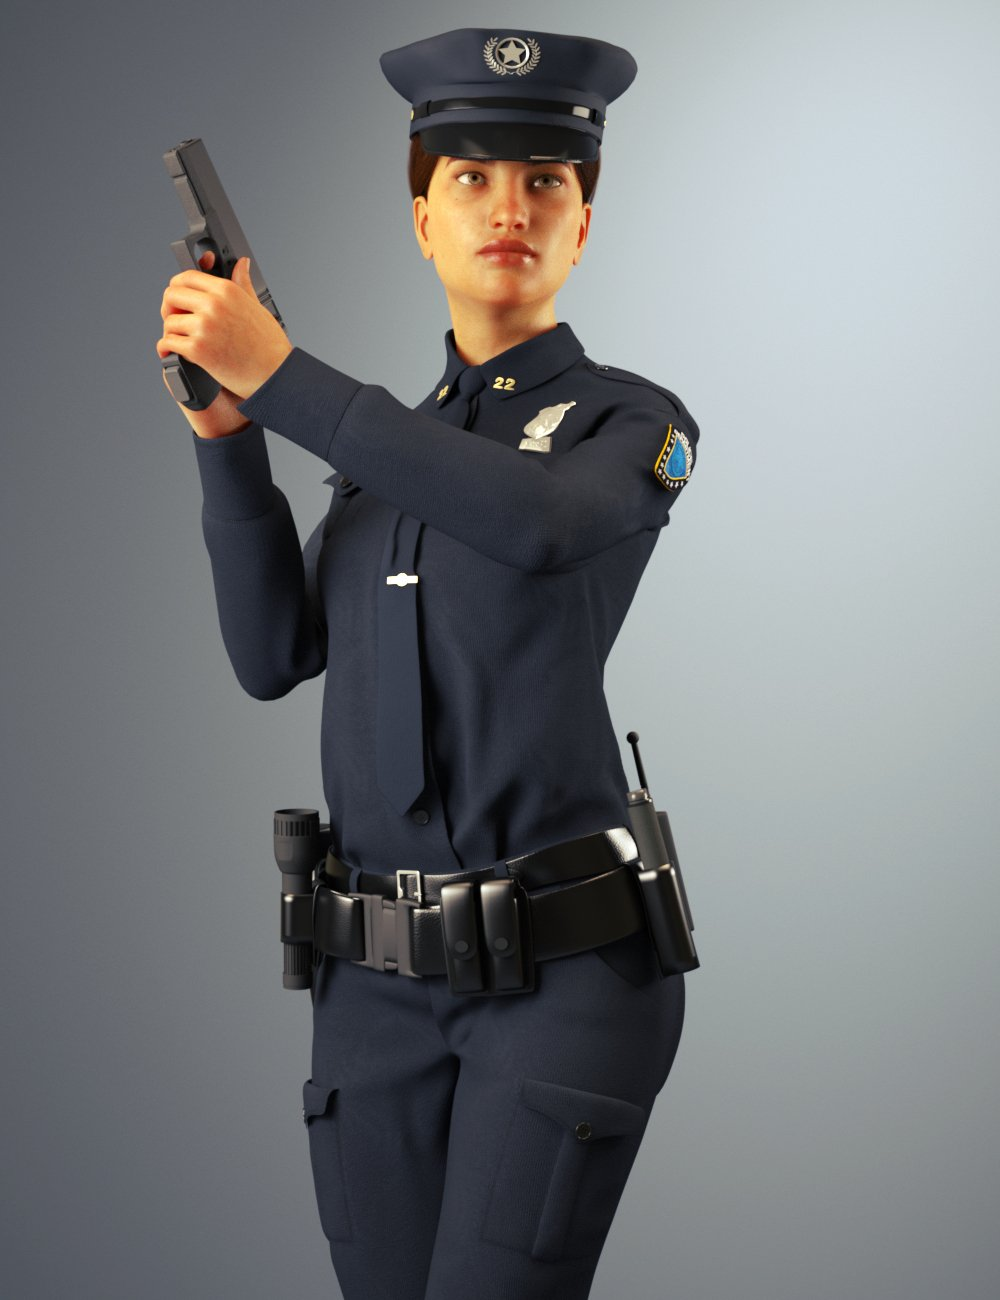 dForce Police Officer Outfit for Genesis 8 Female(s) by: Toyen, 3D Models by Daz 3D